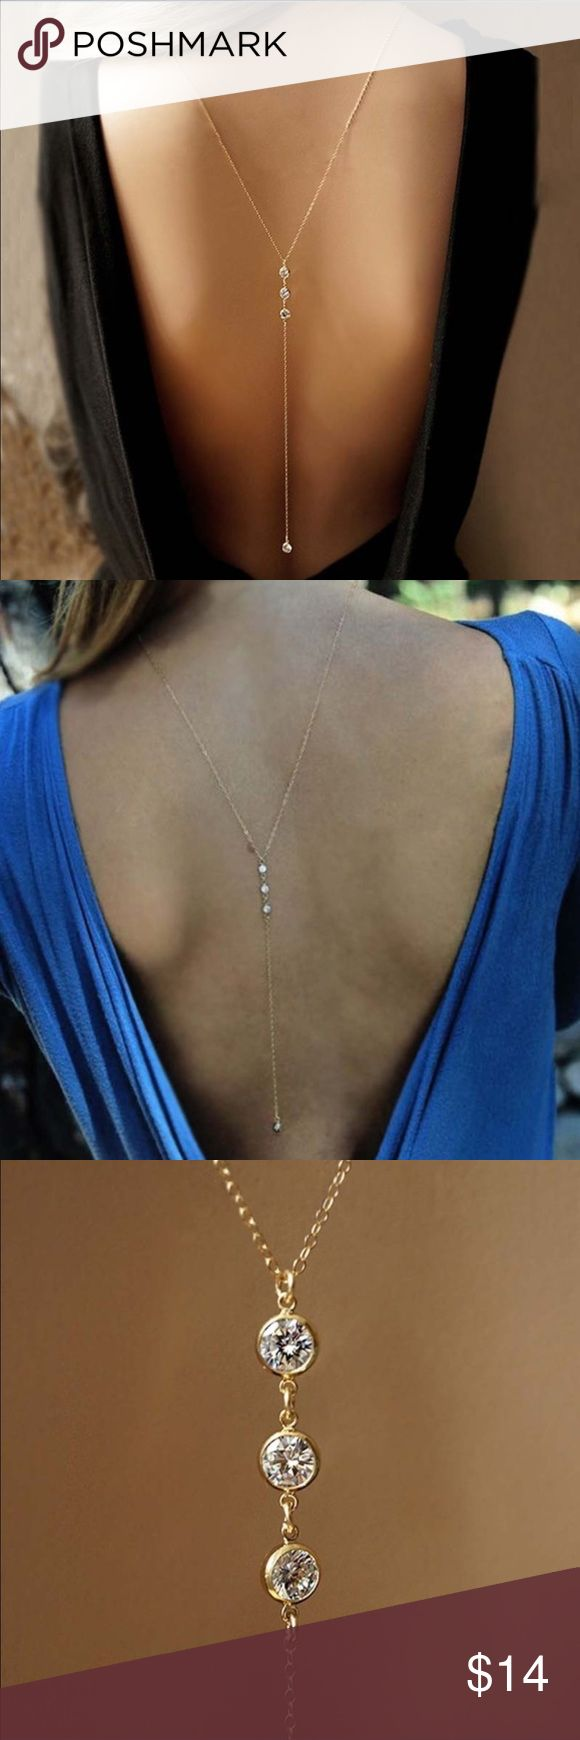 Sexy Rhinestone Back Sparkly Body Chain Sexy Rhinestone Back Sparkly Body Chain. The last photo shows what the front looks like. Jewelry